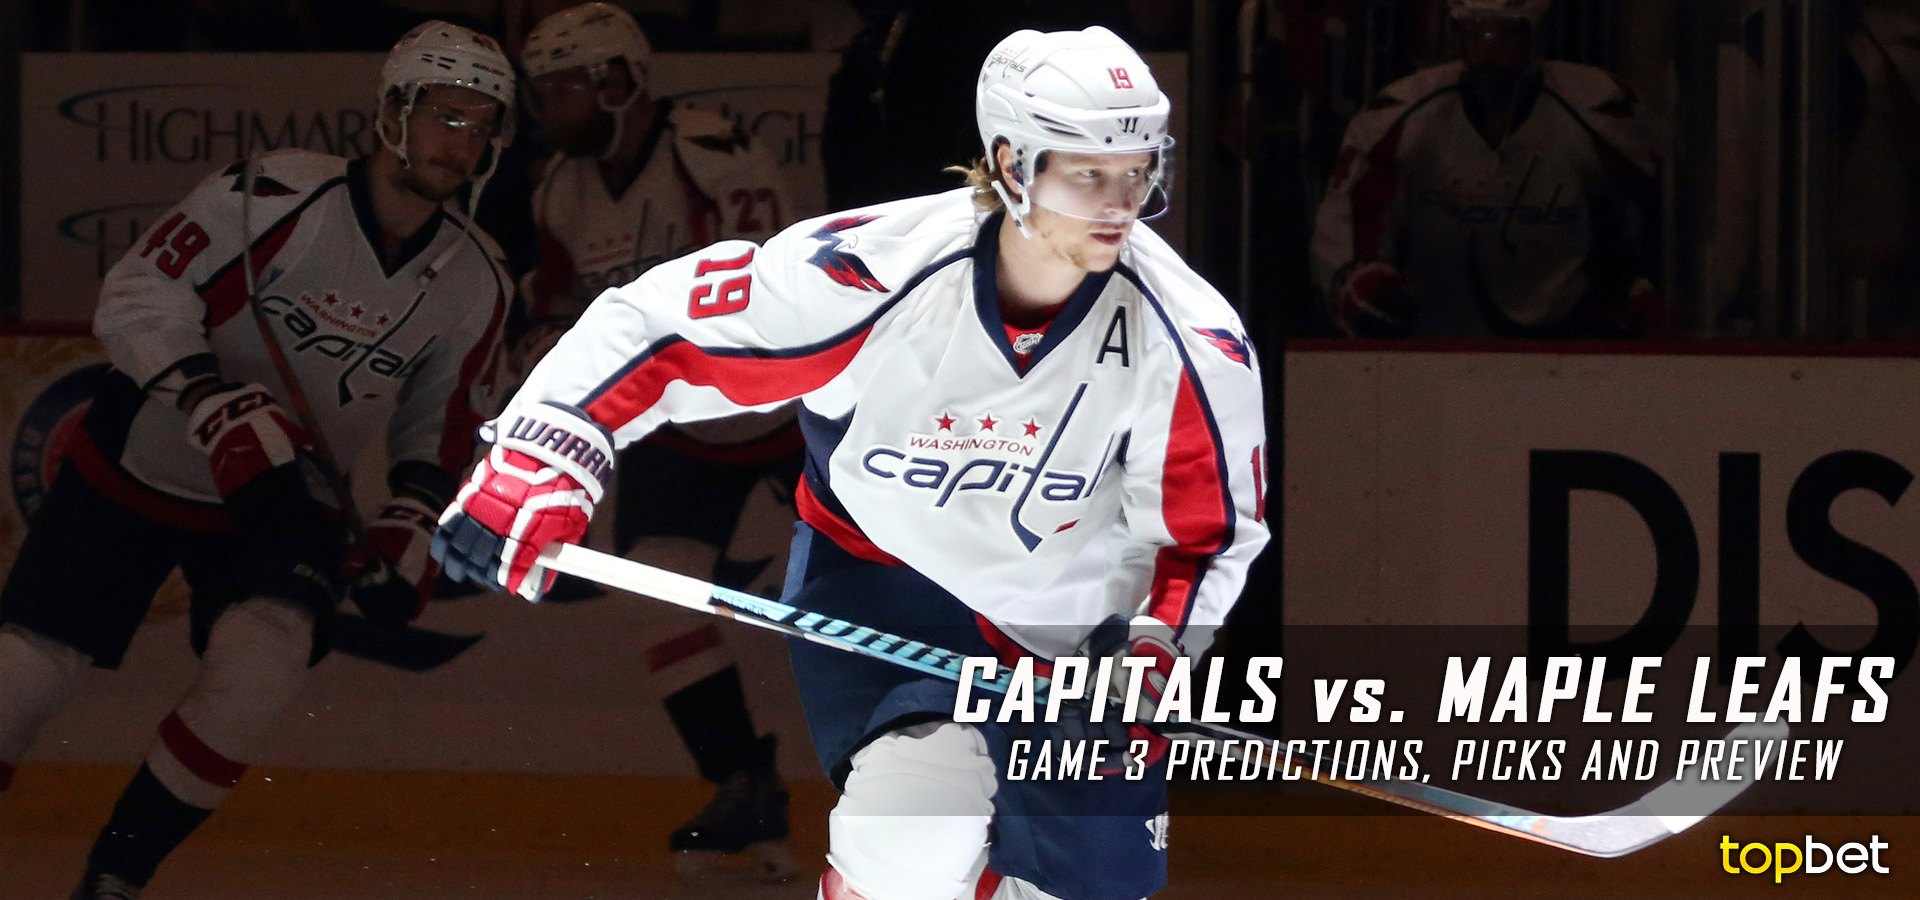 Capitals vs Maple Leafs Series Game 3 Predictions   Preview b8964cd29cd6